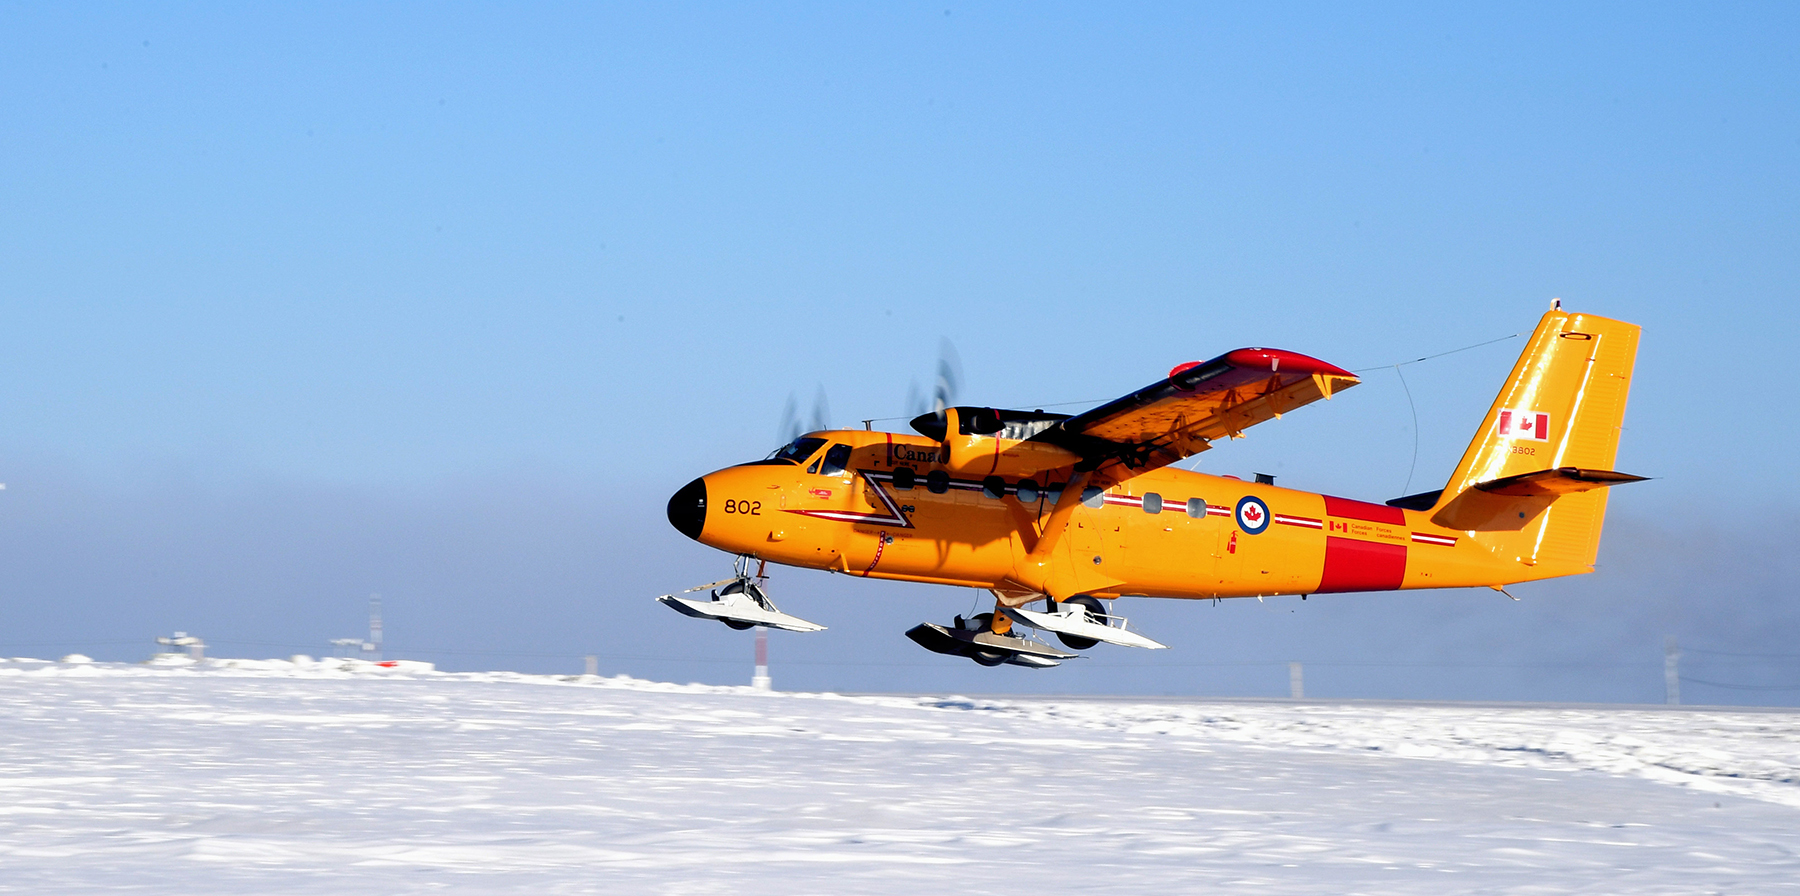 During Operation NUNALIVUT, a CC-138 Twin Otter aircraft from 440 (Transport) Squadron in Yellowknife, Northwest Territories, takes off from Hall Beach Airport en route to Igloolik, Nunavut, on March 2, 2017. PHOTO: Petty Officer, Second Class Belinda Groves, YK-2017-019-007